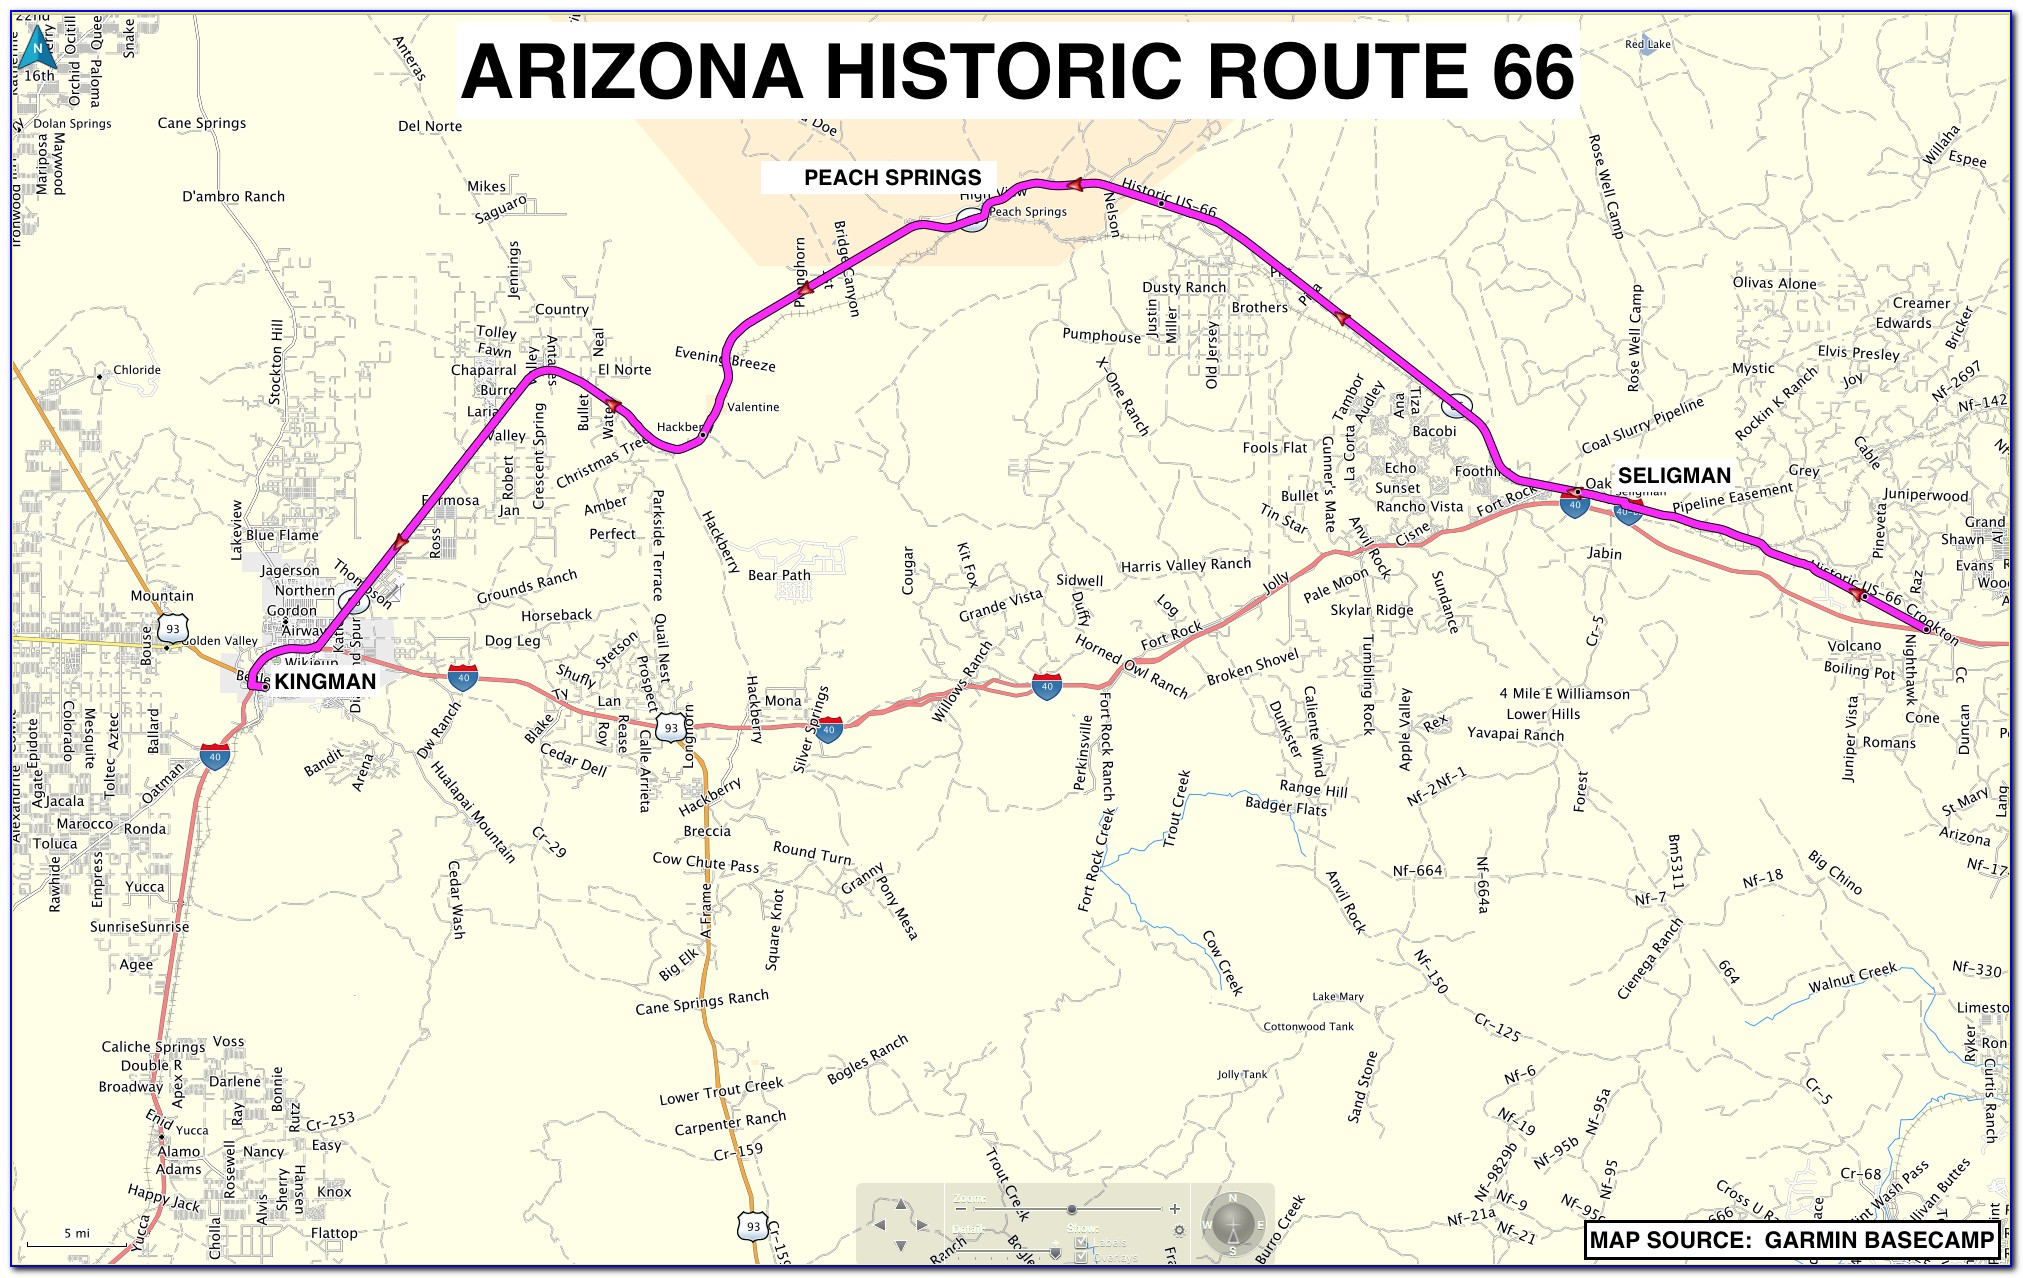 Map Of Old Route 66 California - Maps : Resume Examples ... Route California Map on route 66 oklahoma map, historic route 66 map, arizona route 66 map, show route 66 map, u s route 66 map, vintage route 66 map, route 66 death valley map, route 66 1920s map, route 66 arkansas map, route 66 state map, route 66 highway map, route 66 online map, original route 66 map, route 66 road map, current route 66 map, old route 66 map, driving route 66 map, route 66 detailed map, route 66 missouri map, route 66 colorado map,